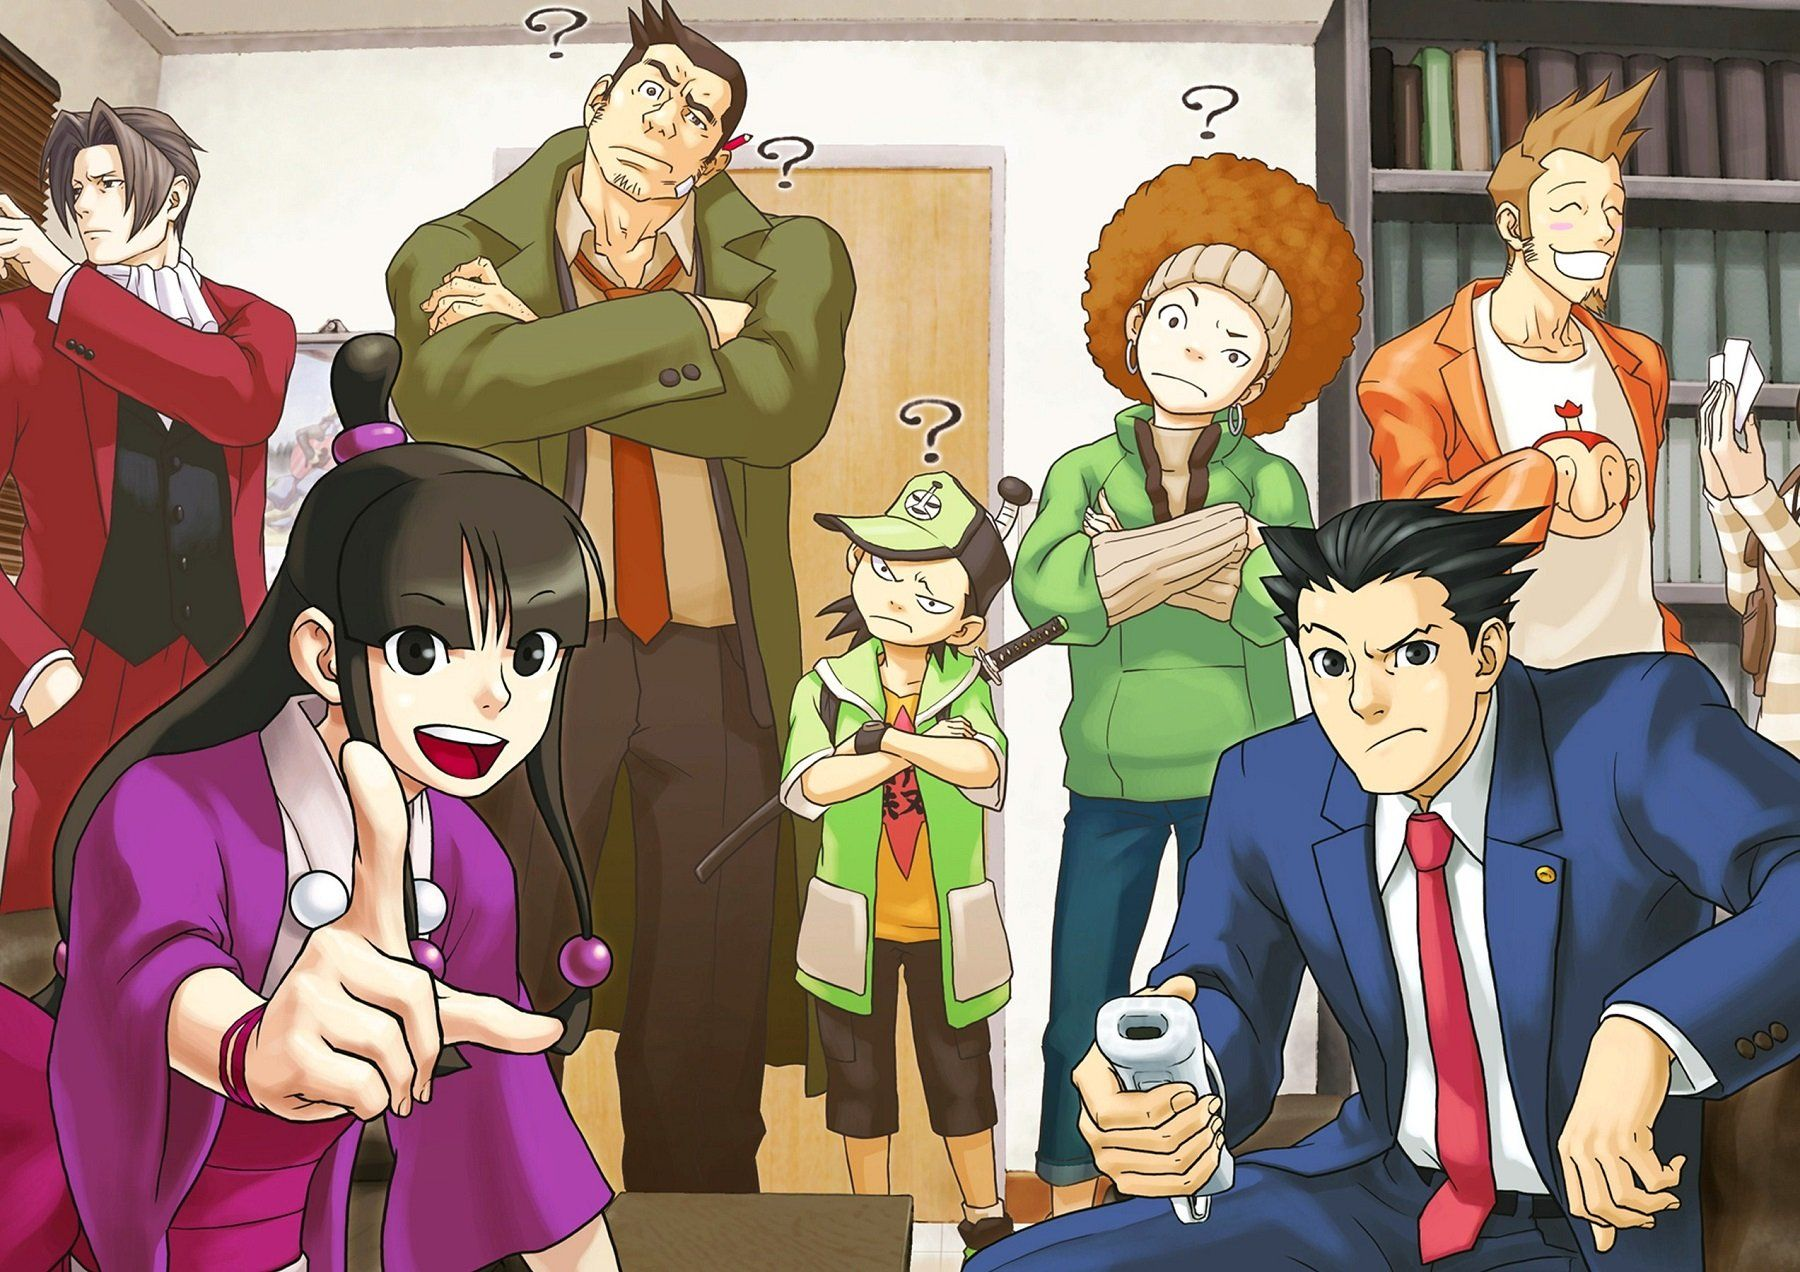 Phoenix Wright Ace Attorney Poster Hd Backgrounds Gaming Wall Art Art Prints Online